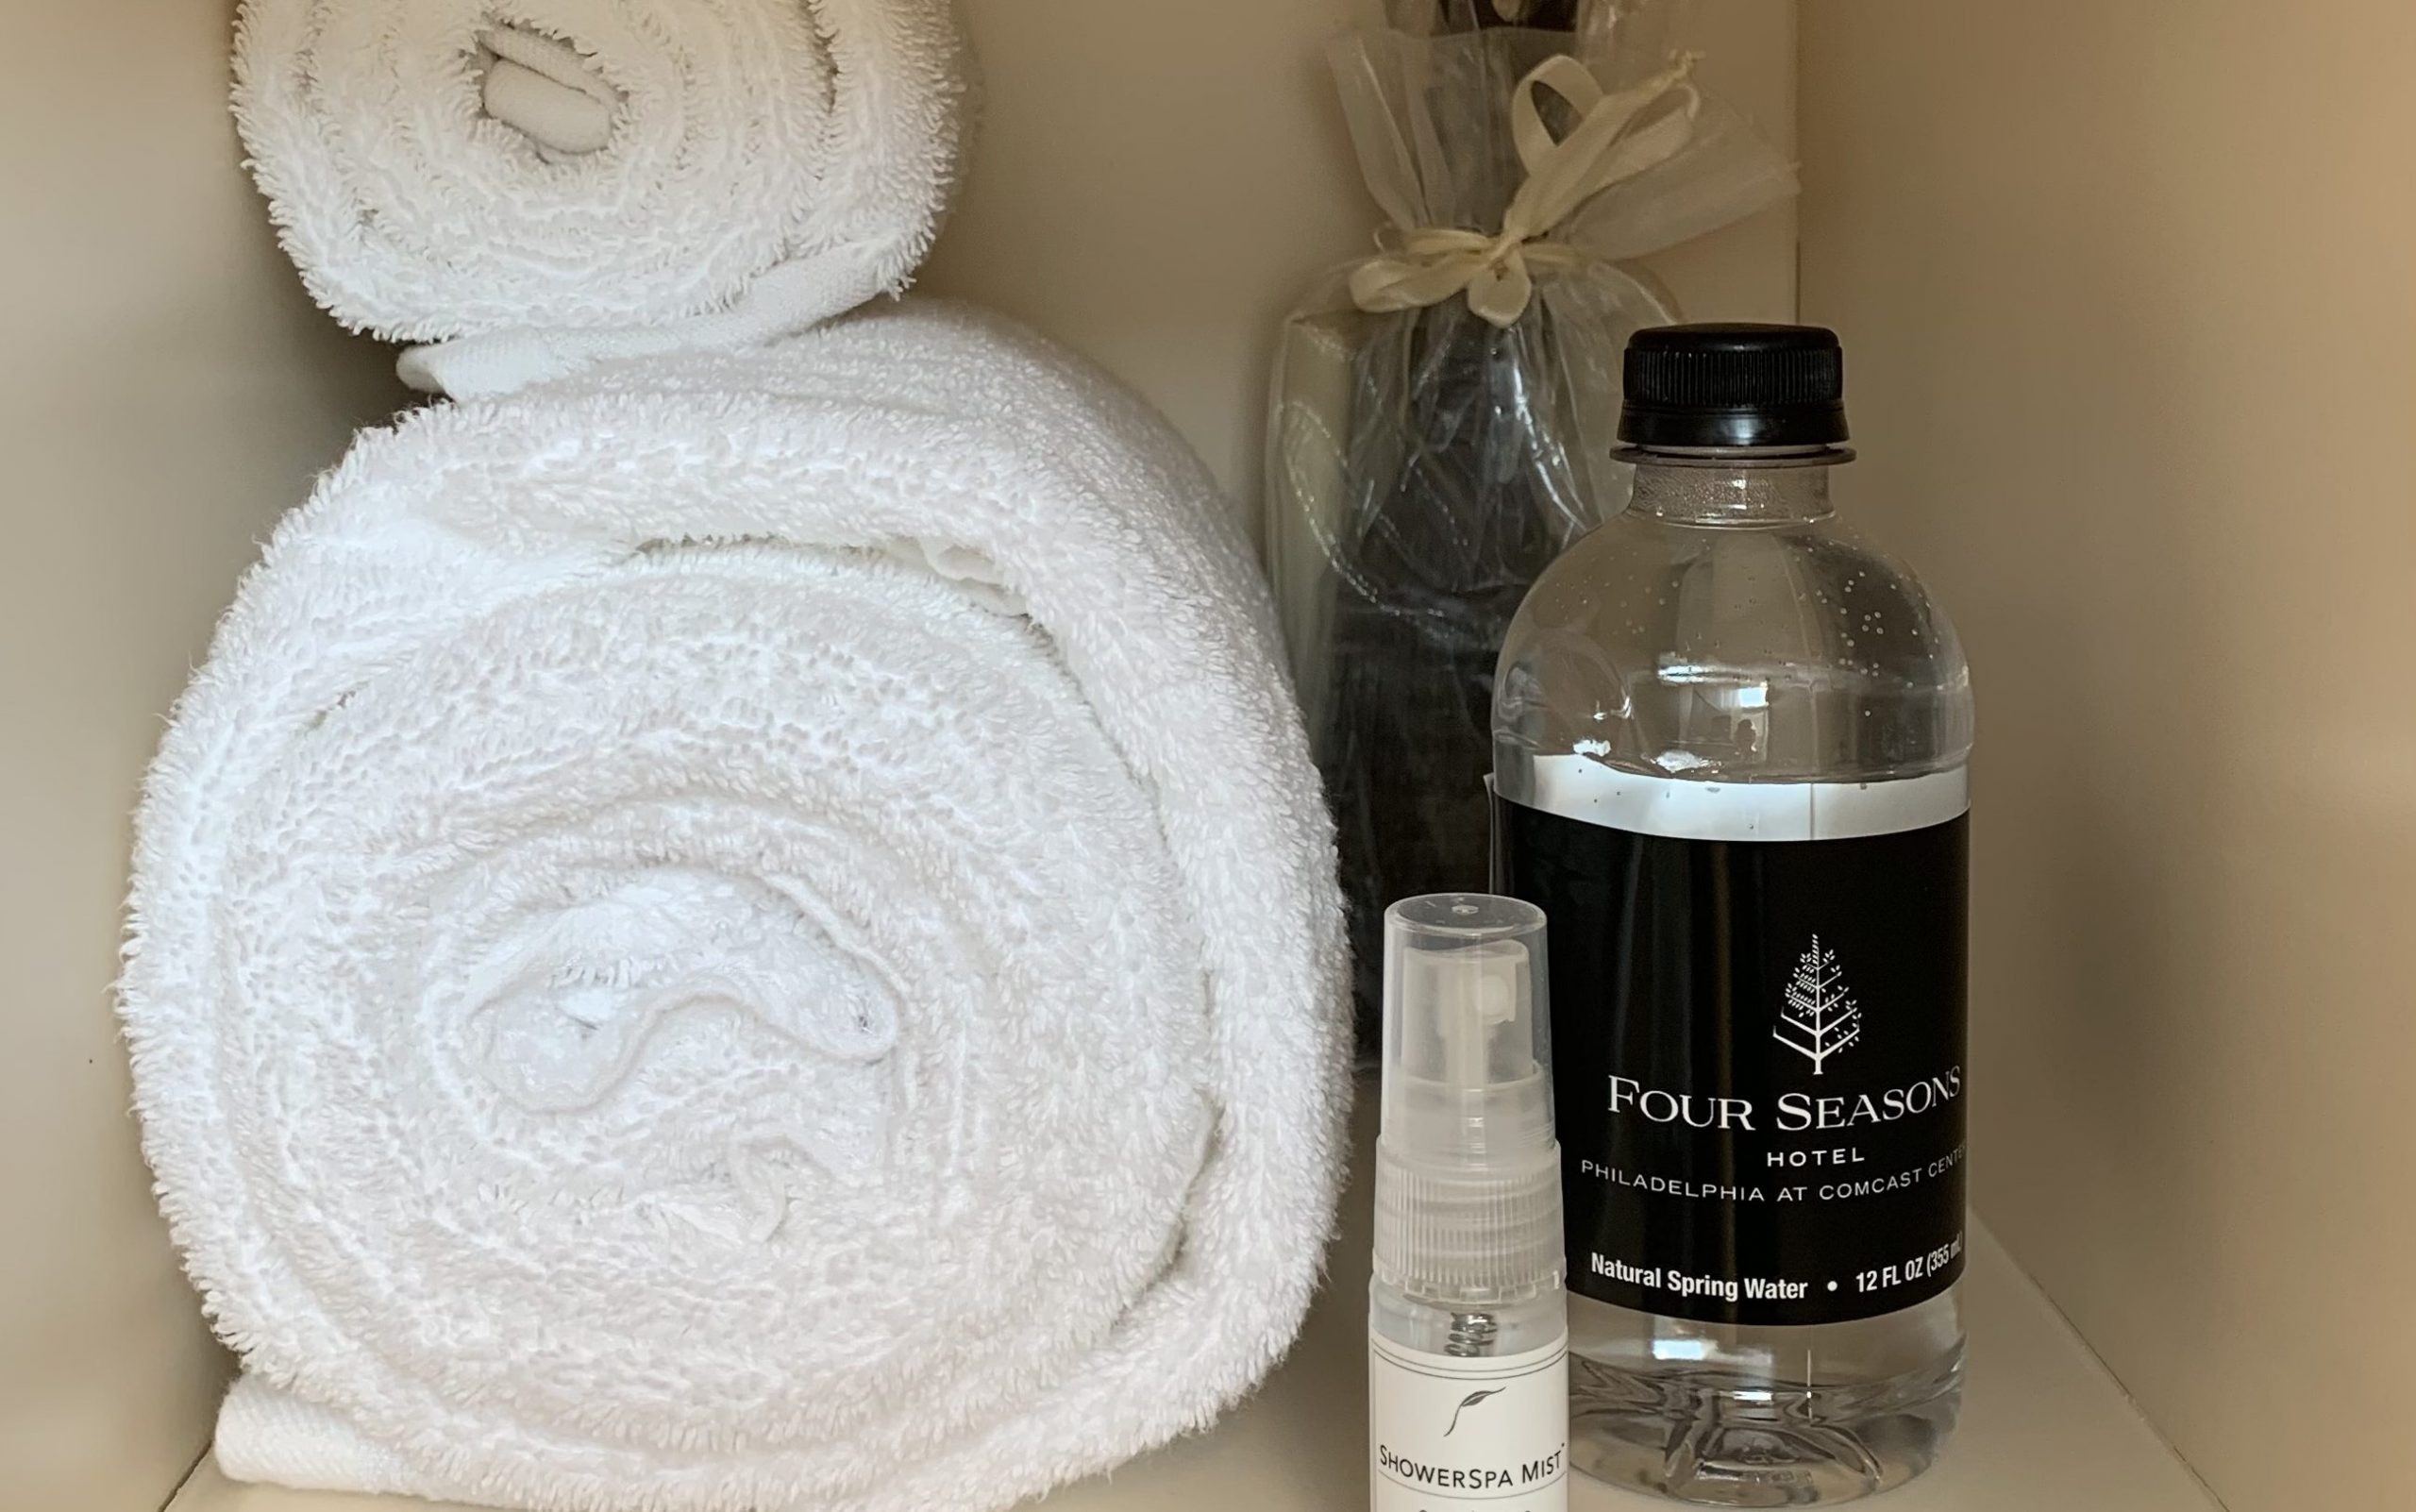 spa locker with towel, water, and various amenities